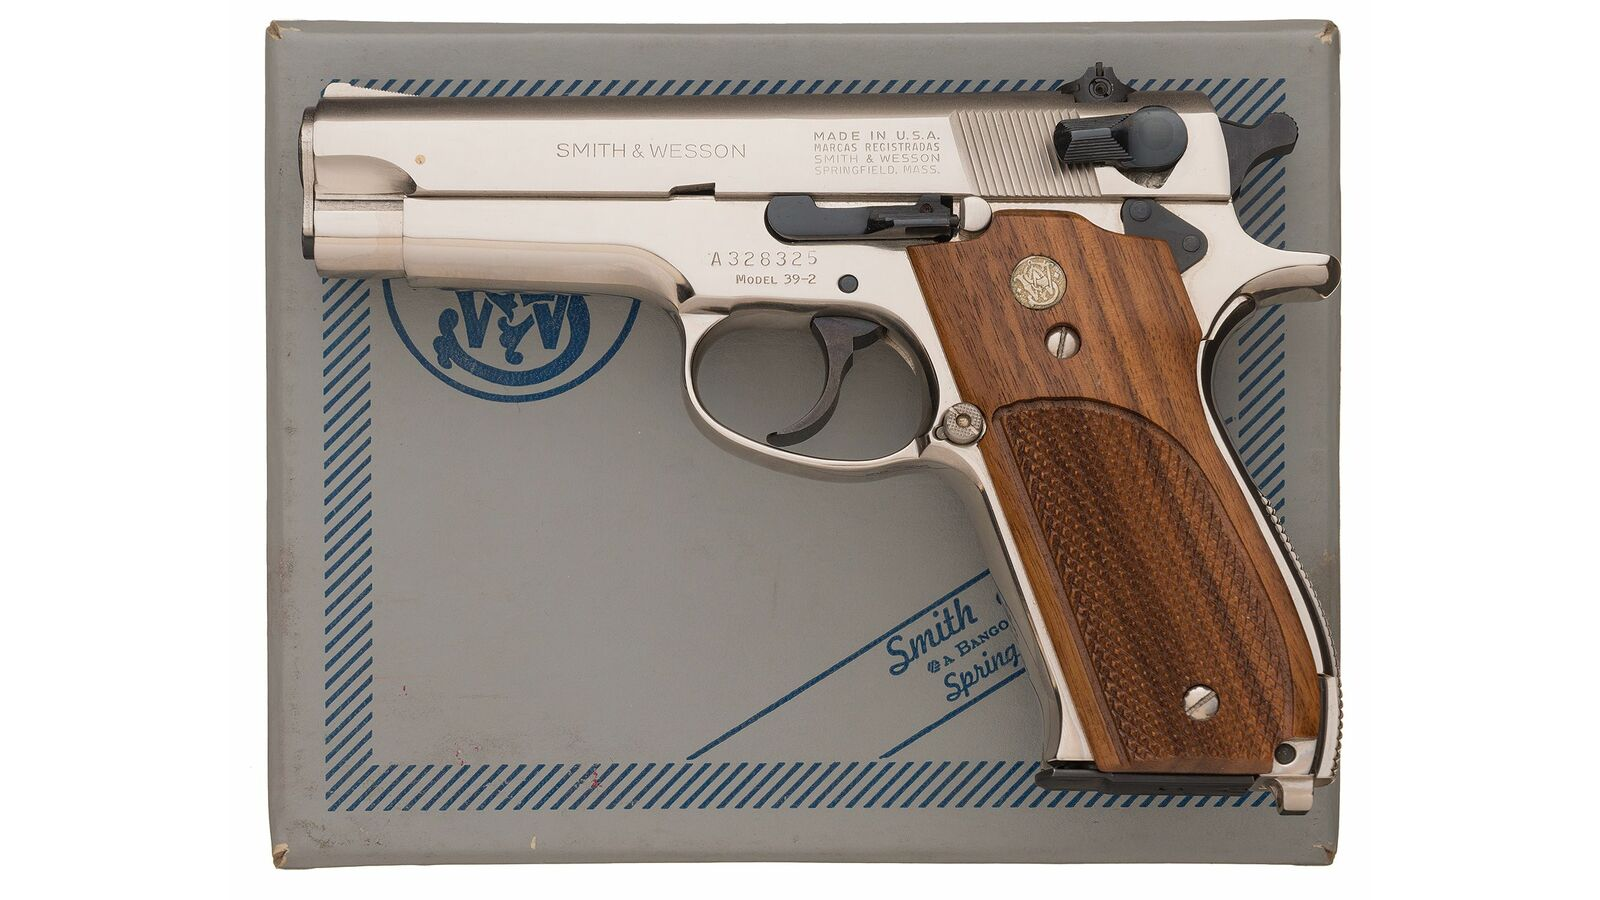 smith and wesson model 39-2 serial number search